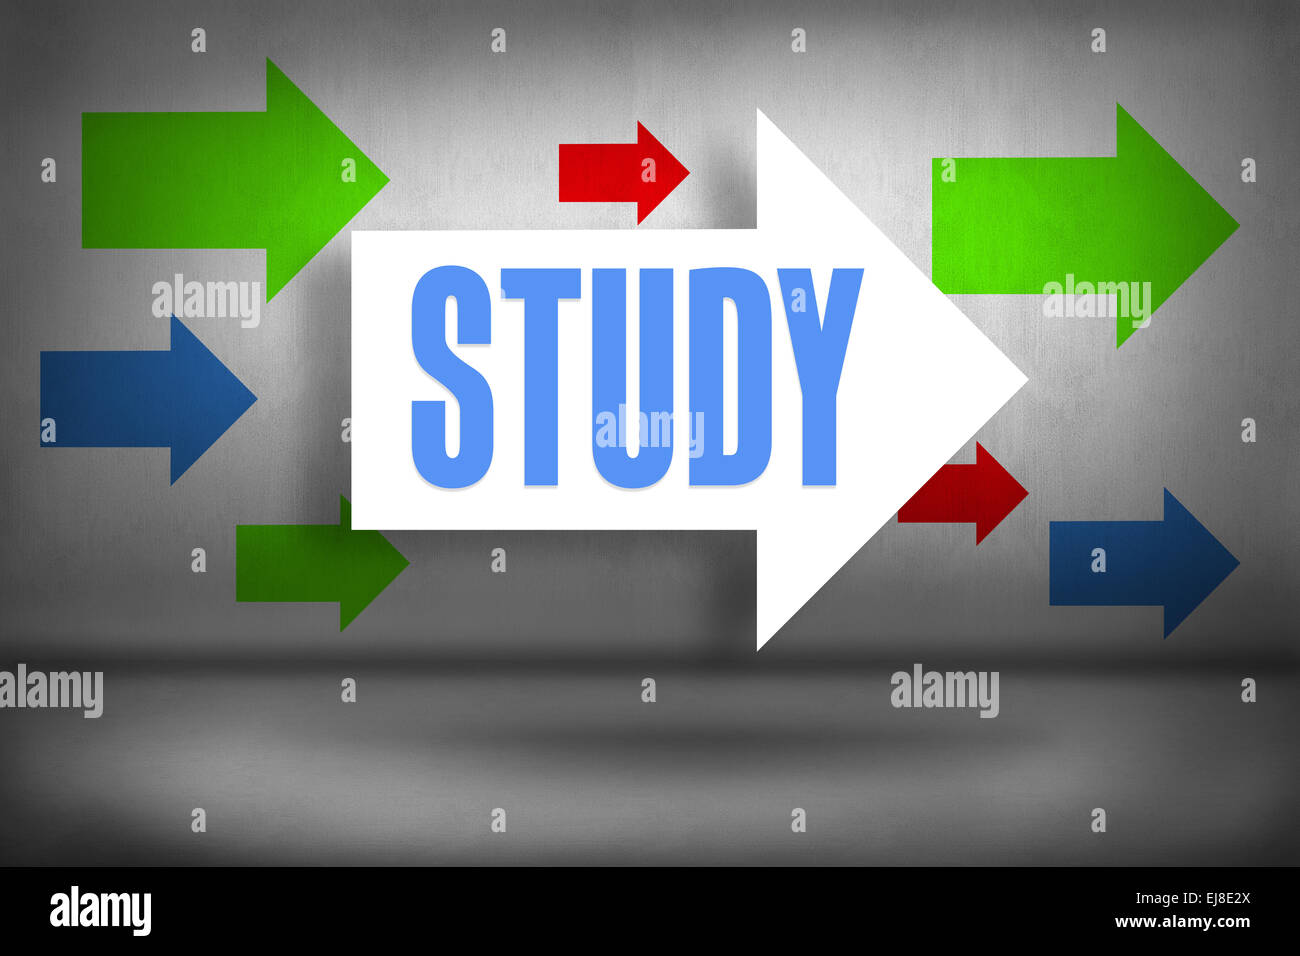 Study against arrows pointing - Stock Image